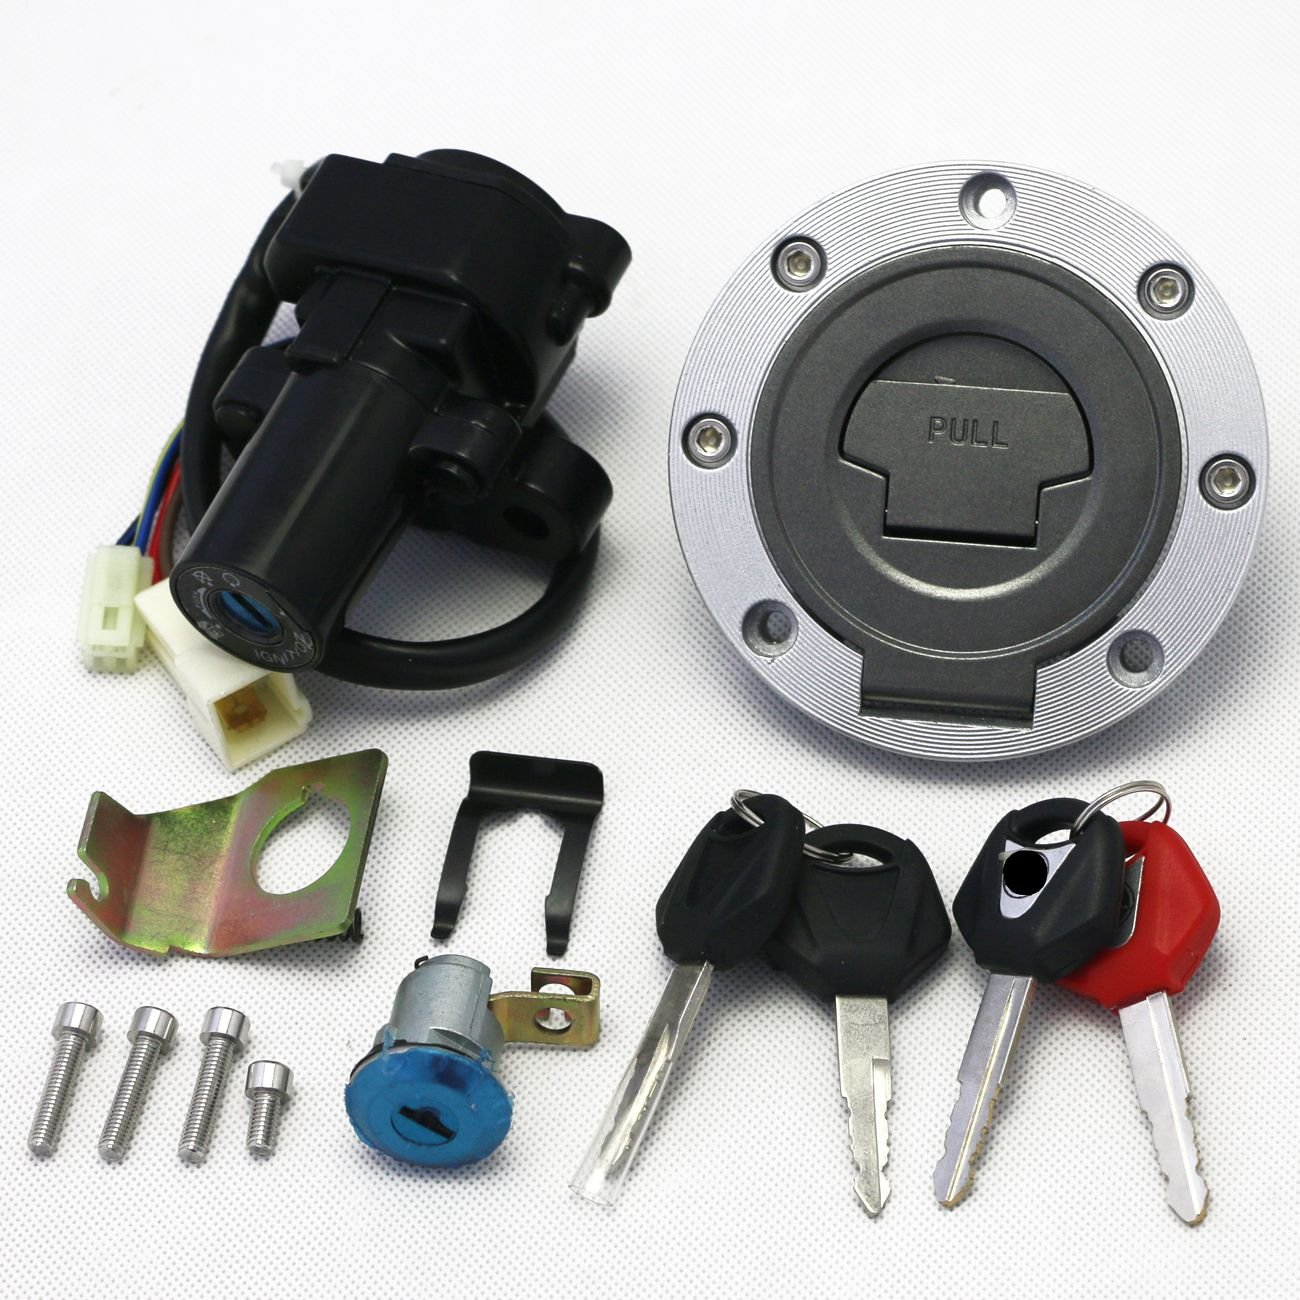 Ignition Switch Fuel Gas Cap Seat Lock Key Set for Yamaha YZF R1 2002-2003 on